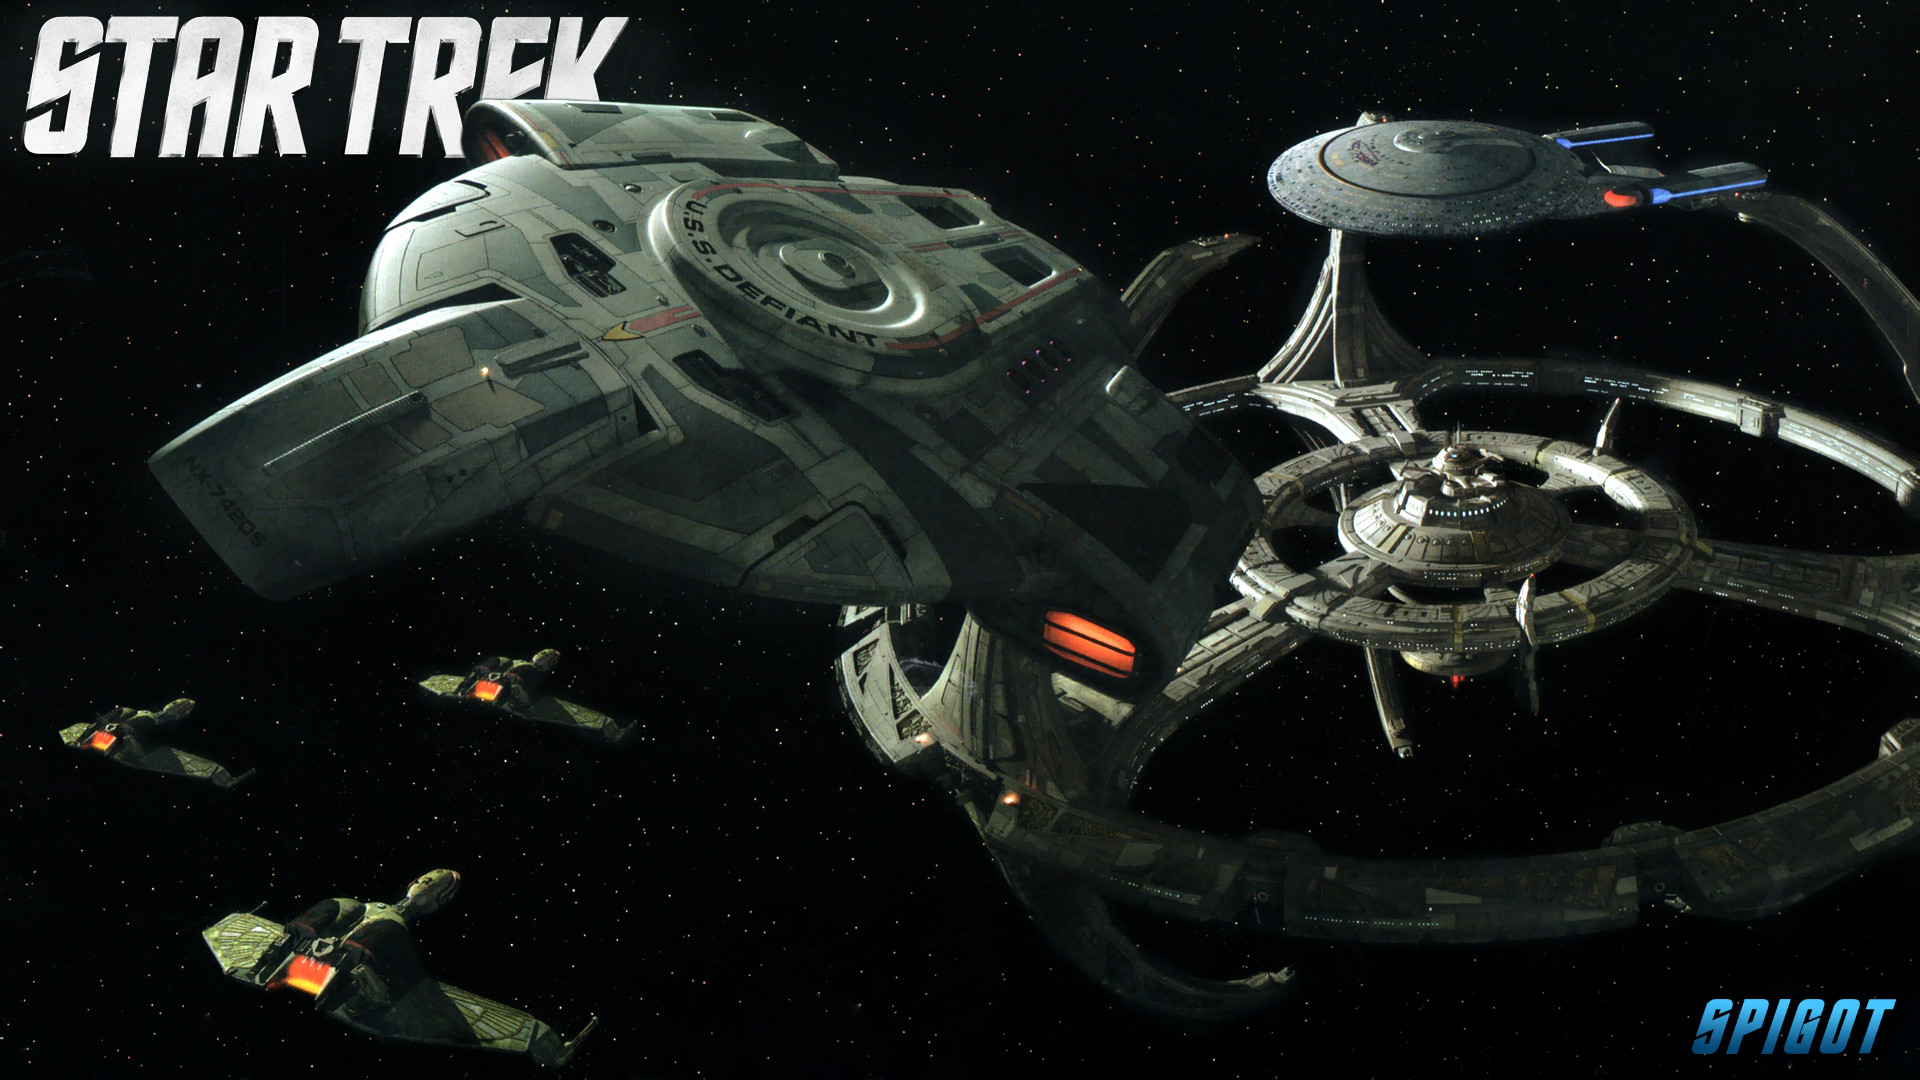 Star Trek Ships Wallpapers. June 8, 2012. Here are some of the …